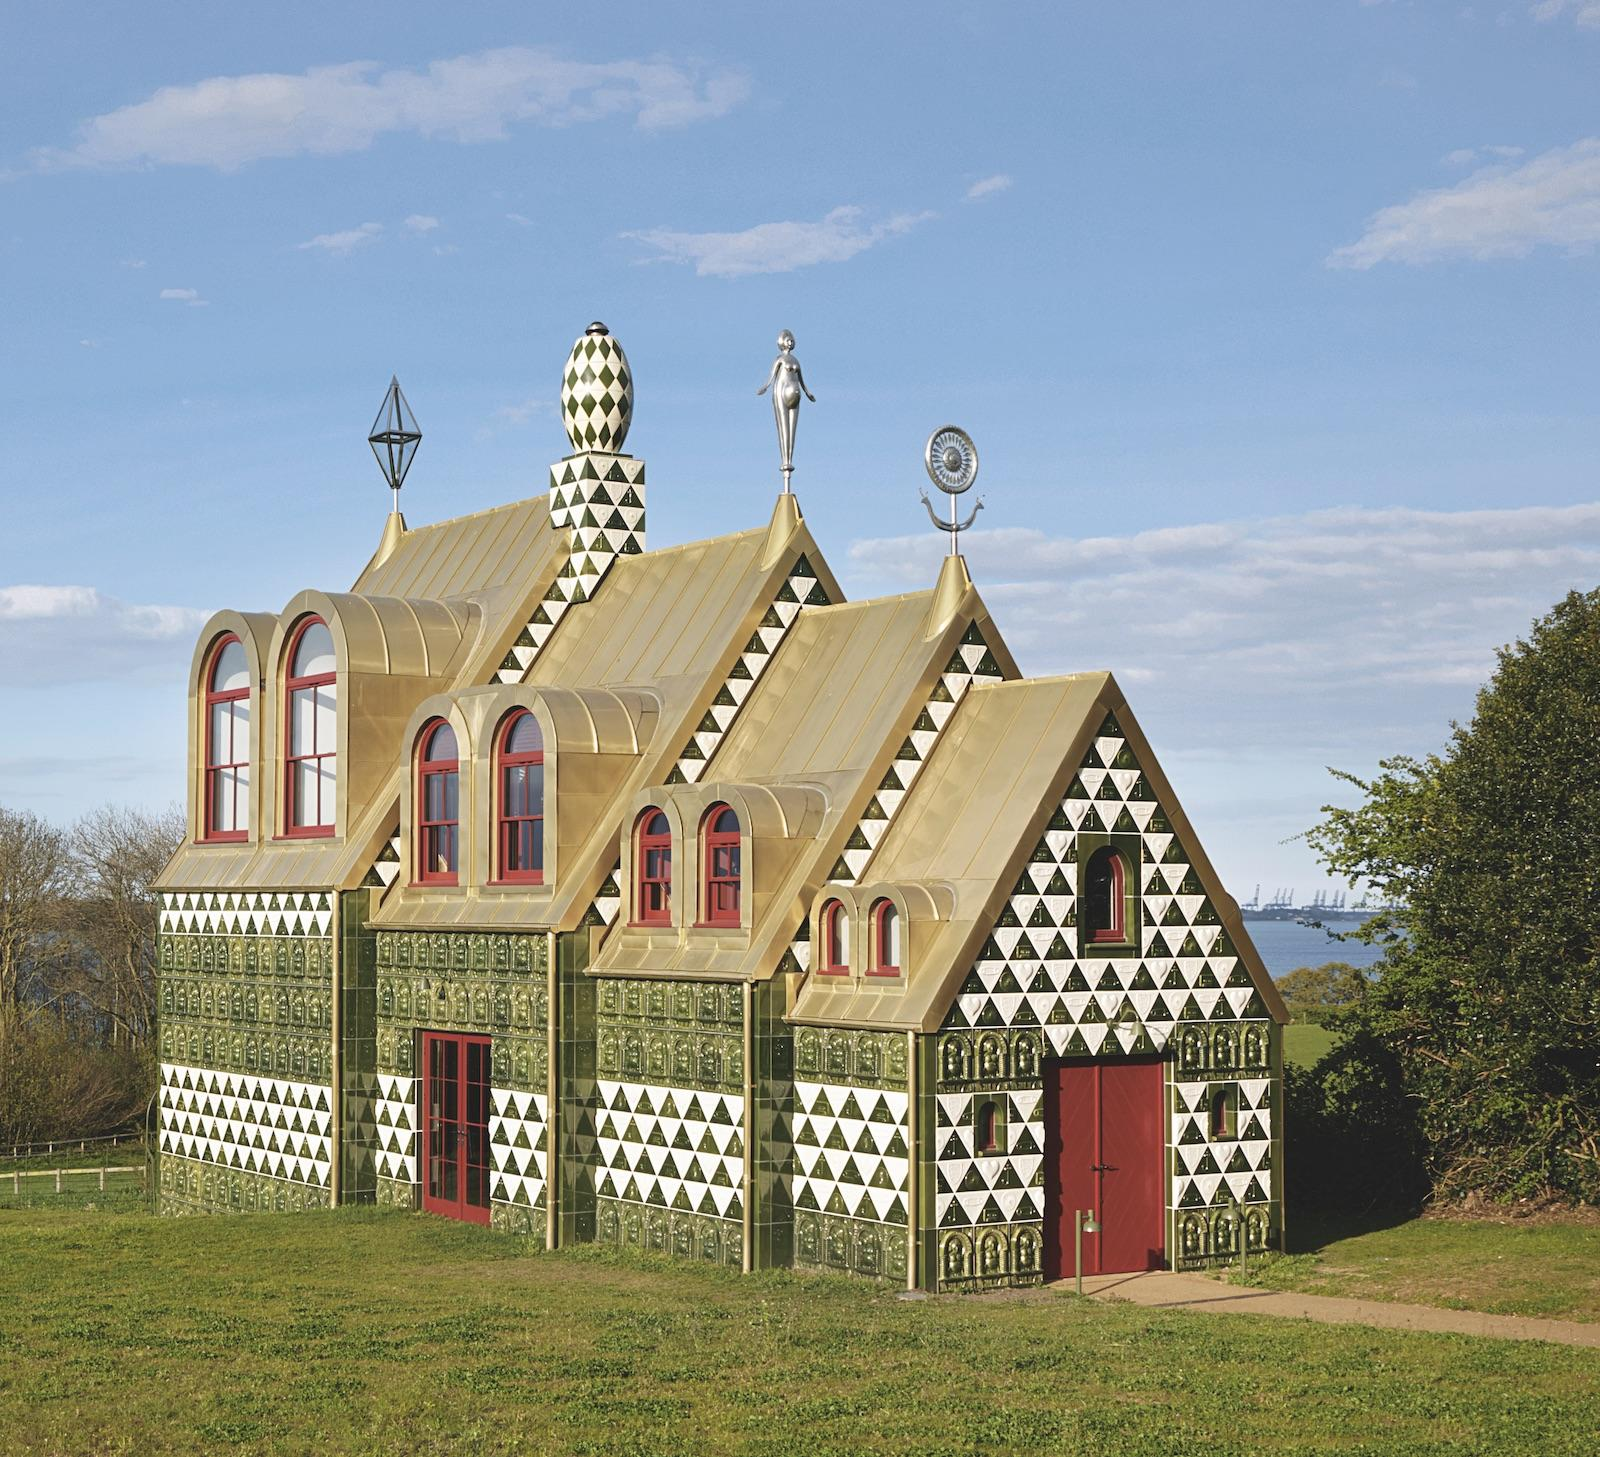 A House For Essex, 2015, Essex, England, UK, FAT & Grayson Perry. Picture credit: Jack Hobhouse/Living Architecture